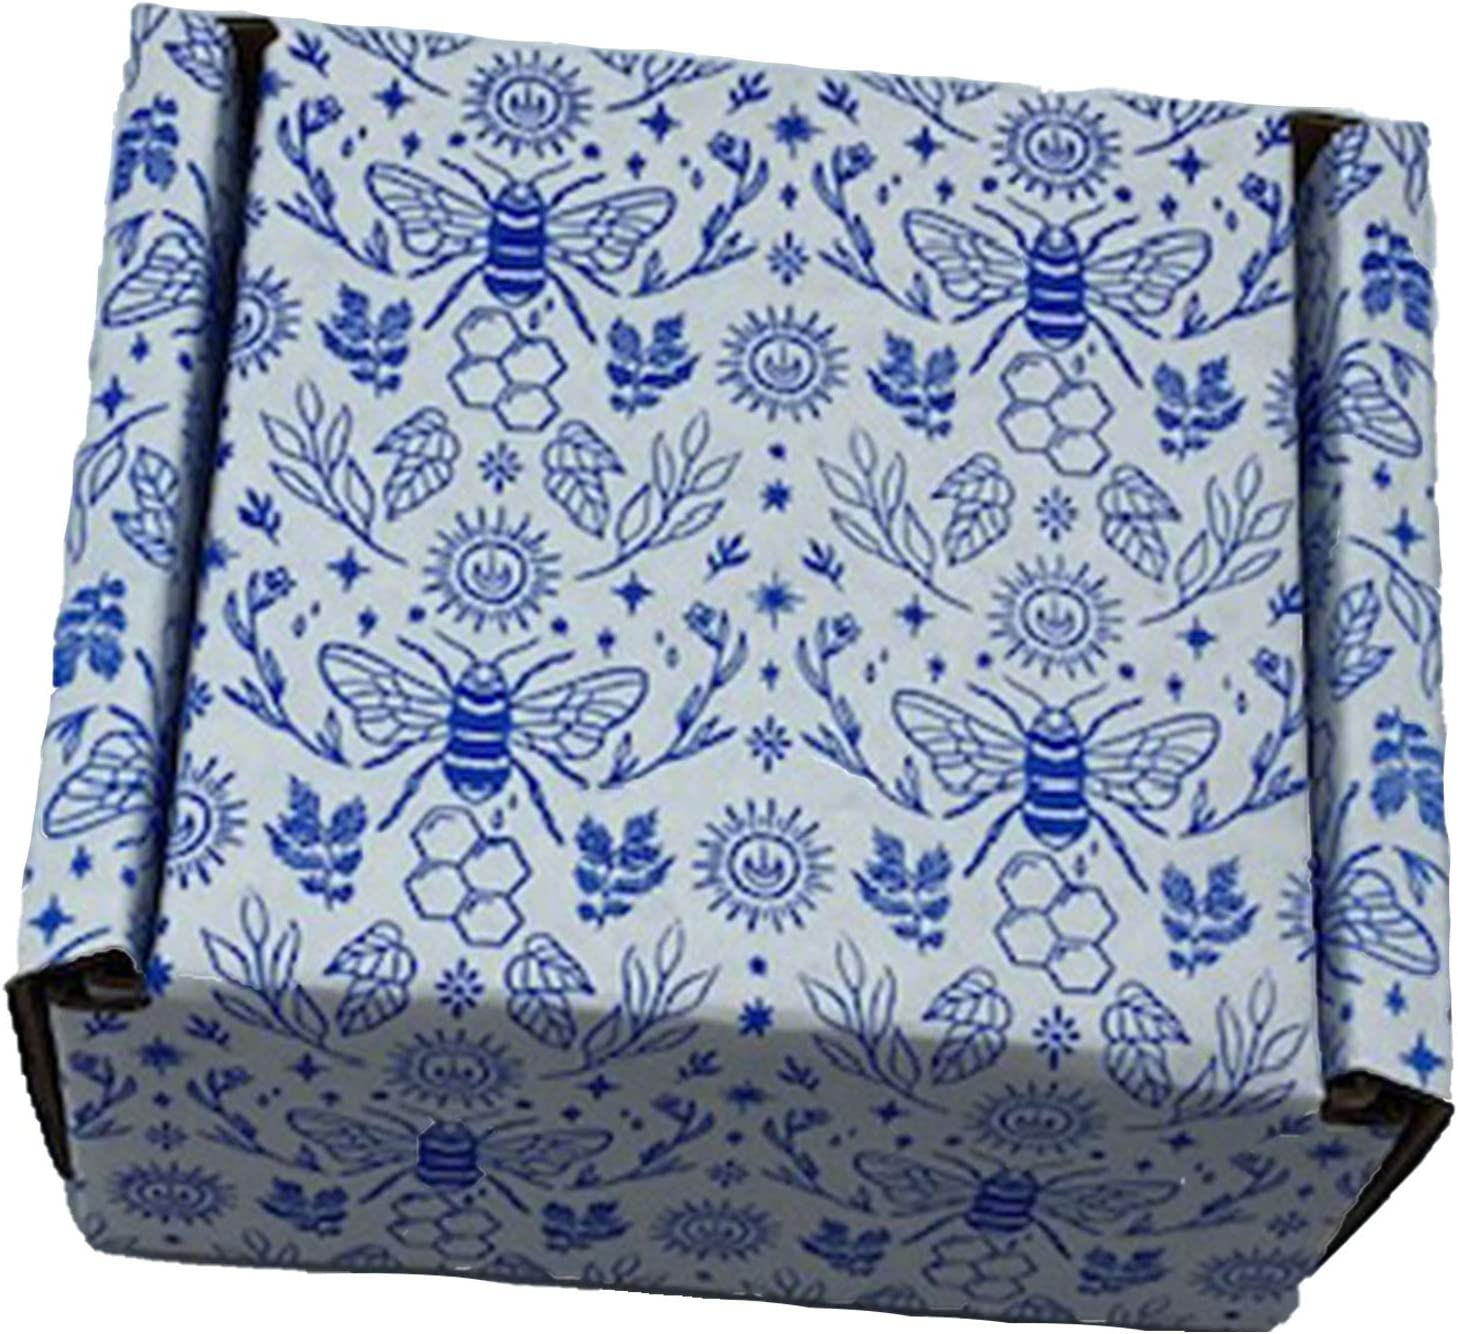 Box Mailer Luxury goods 4x4x2 Discount mail order Bee Print Pack 25